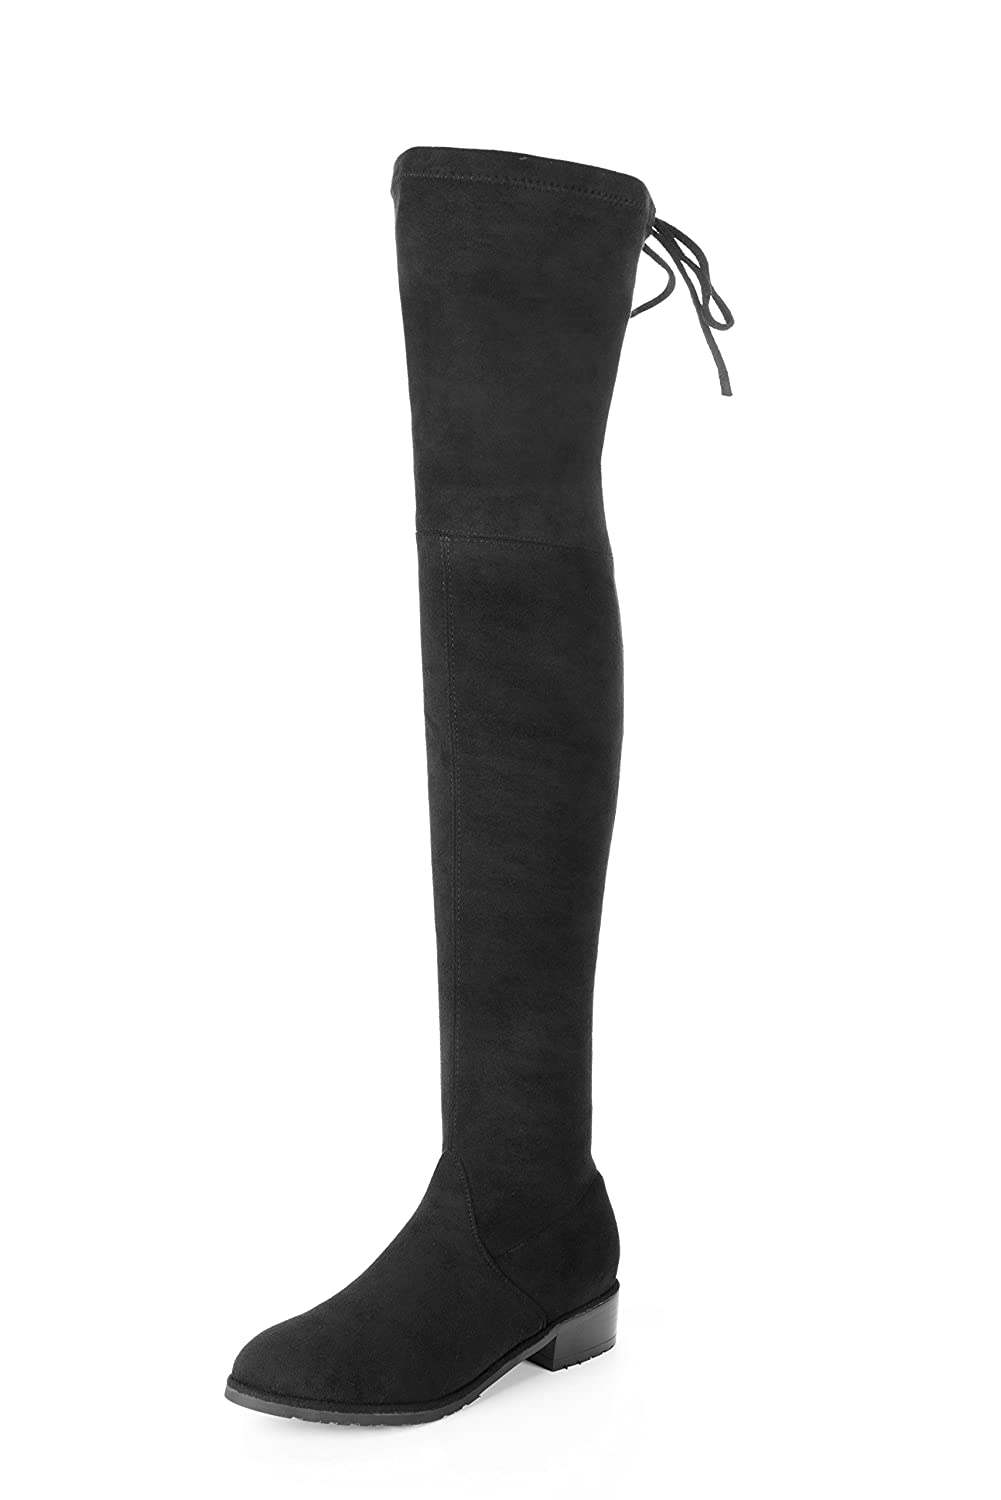 77b2fd0c882 MIUINCY Thigh High Boots Women Fashion Snow Boots Stretch Fabric Over The Knee  Boots Sexy Womens Winter Boots Black Shoes Woman  Amazon.co.uk  Shoes   Bags